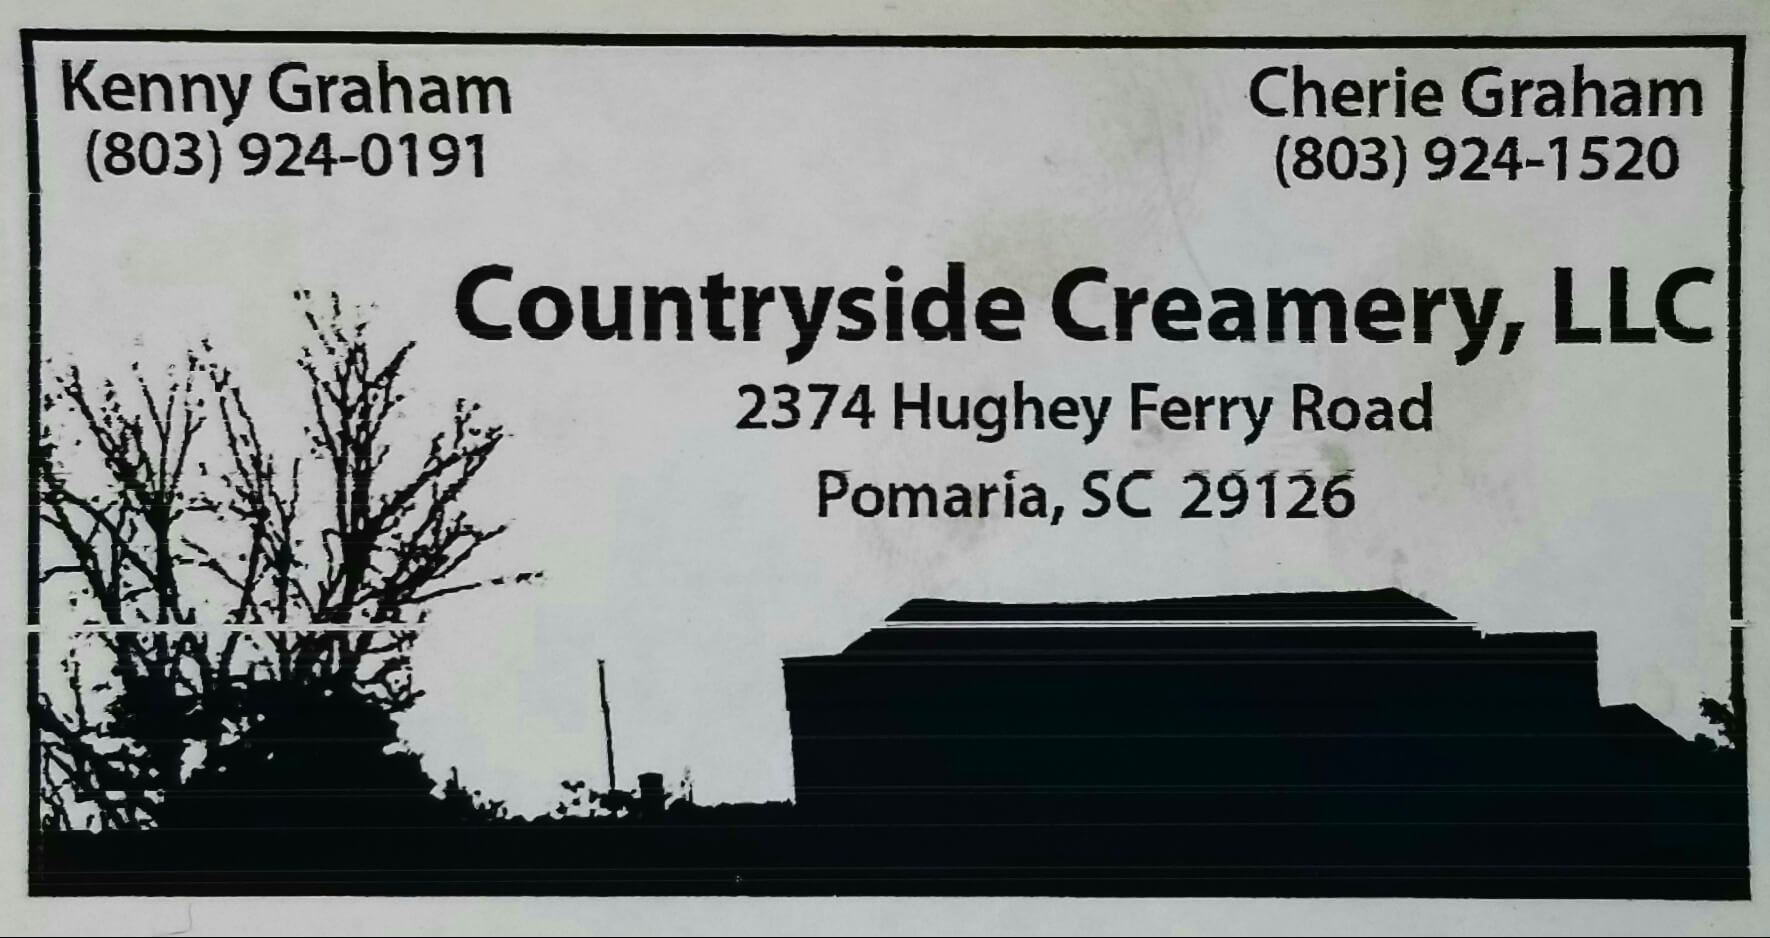 Countryside Creamery